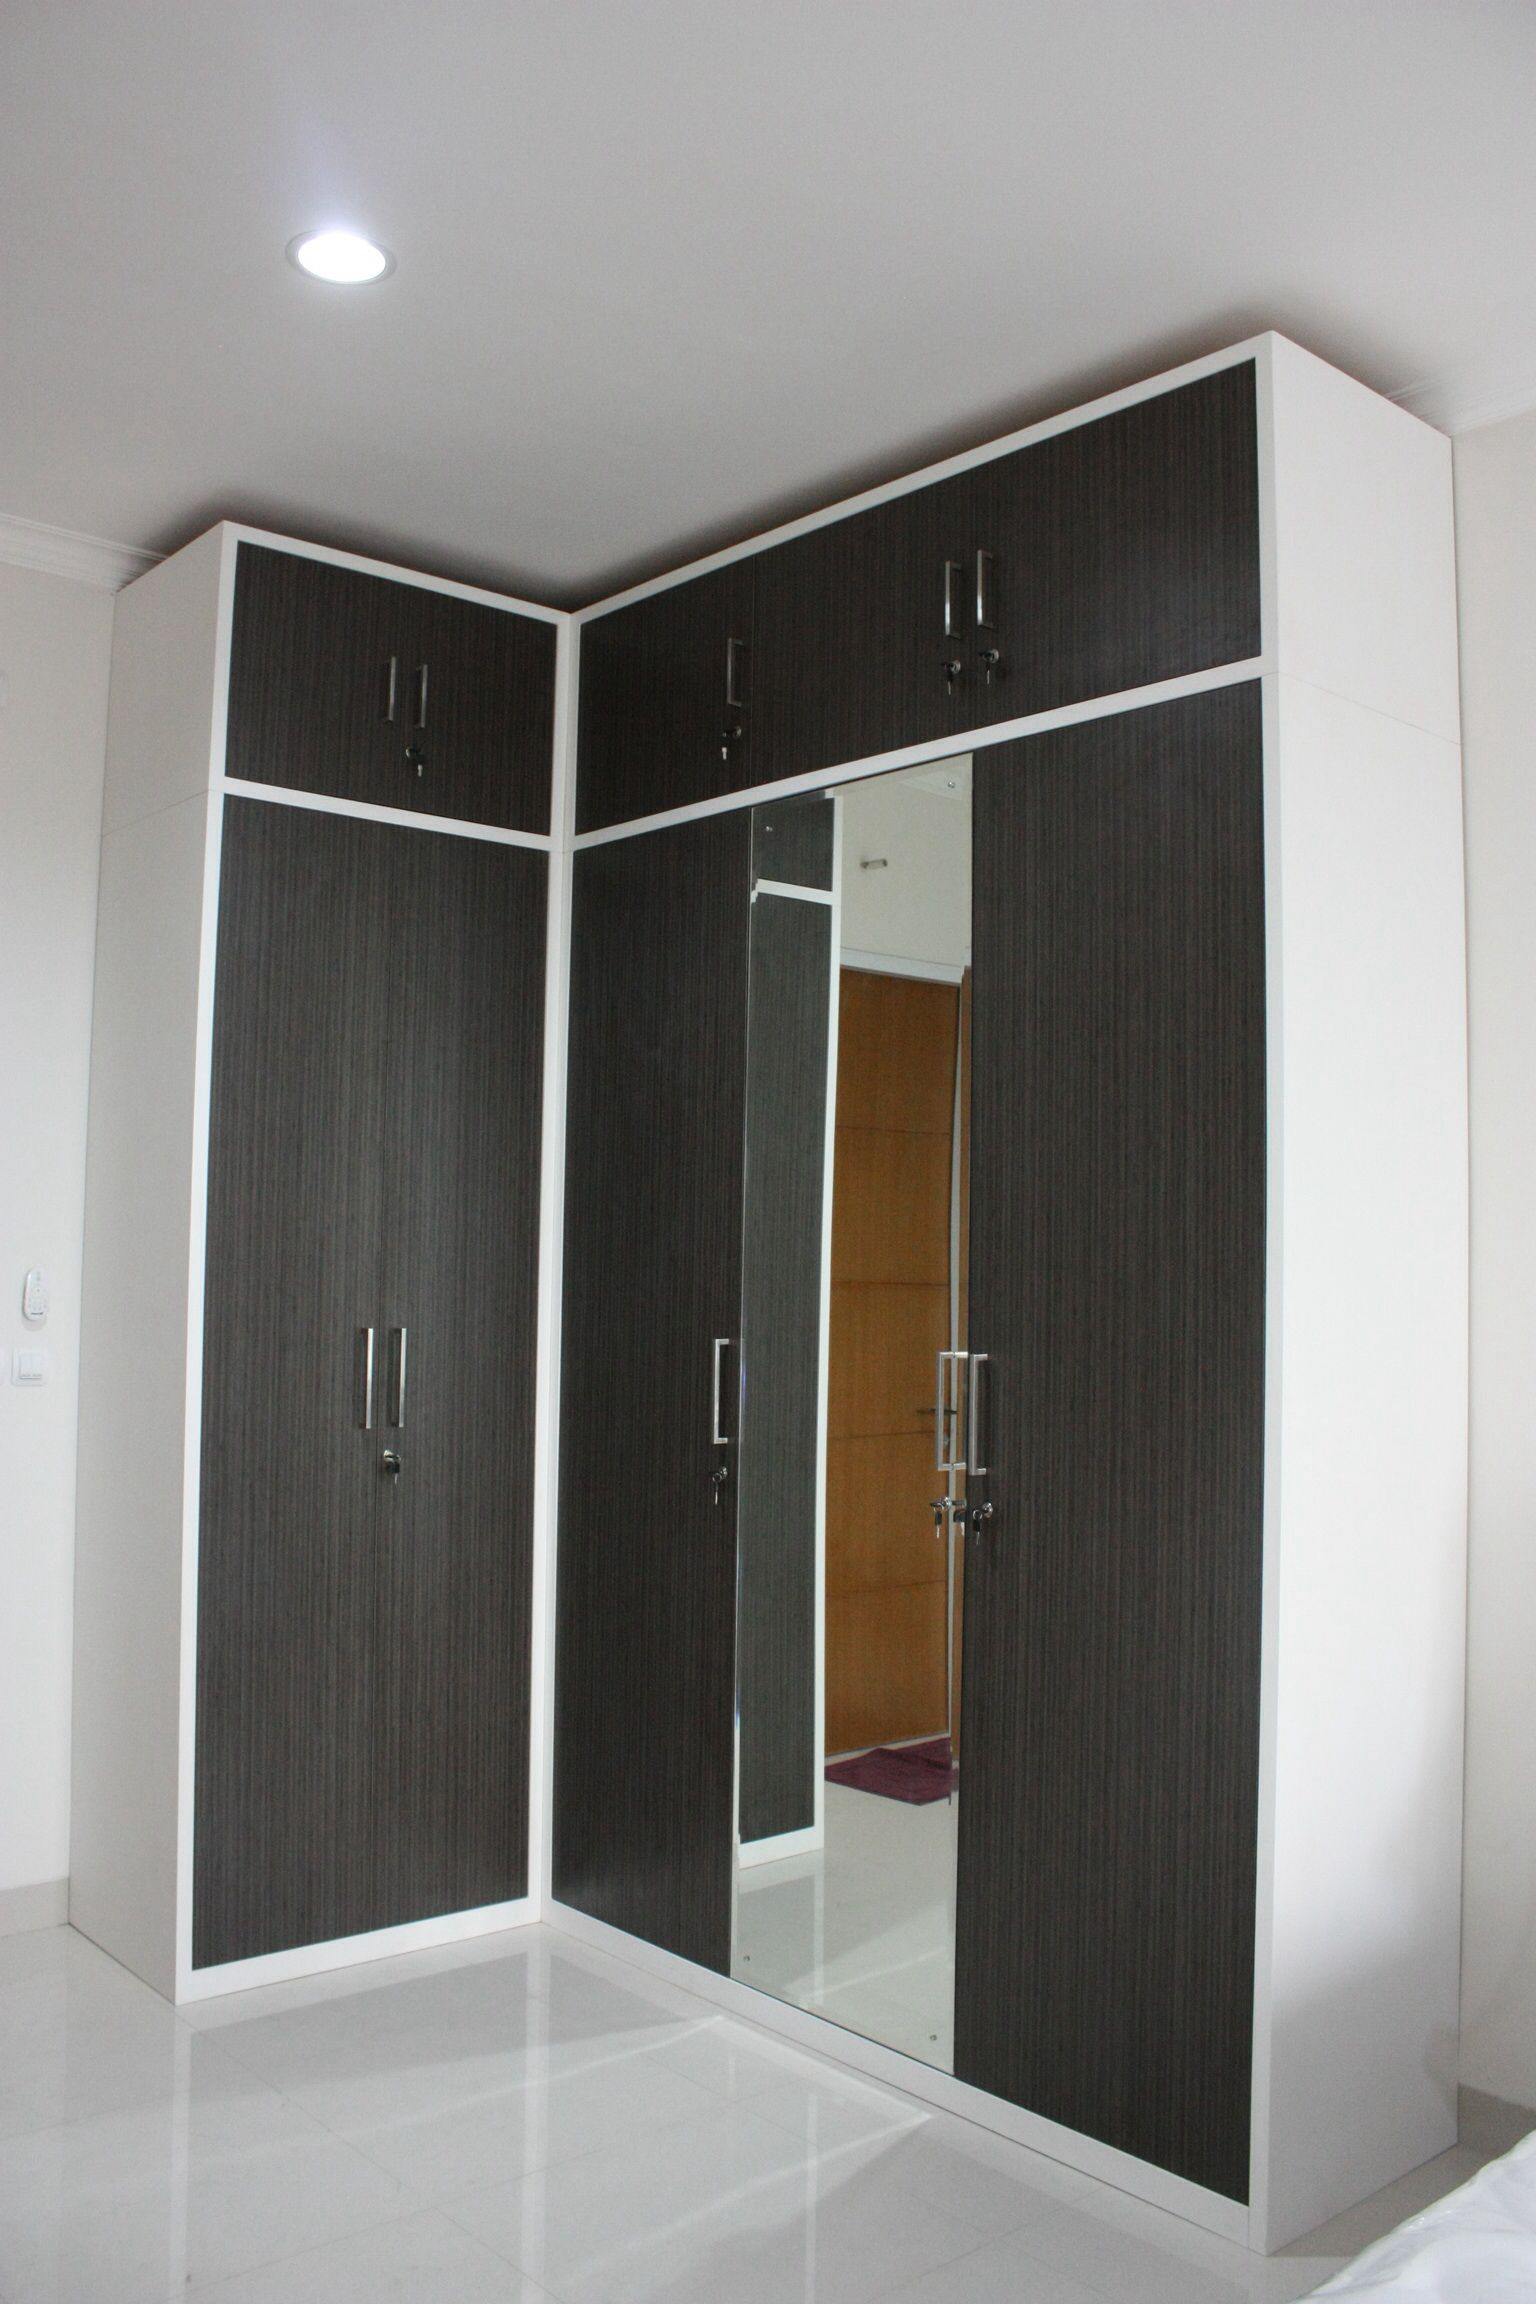 Customized l shaped wardrobe in japanese bamboo hpl finish for L shaped bedroom cupboards